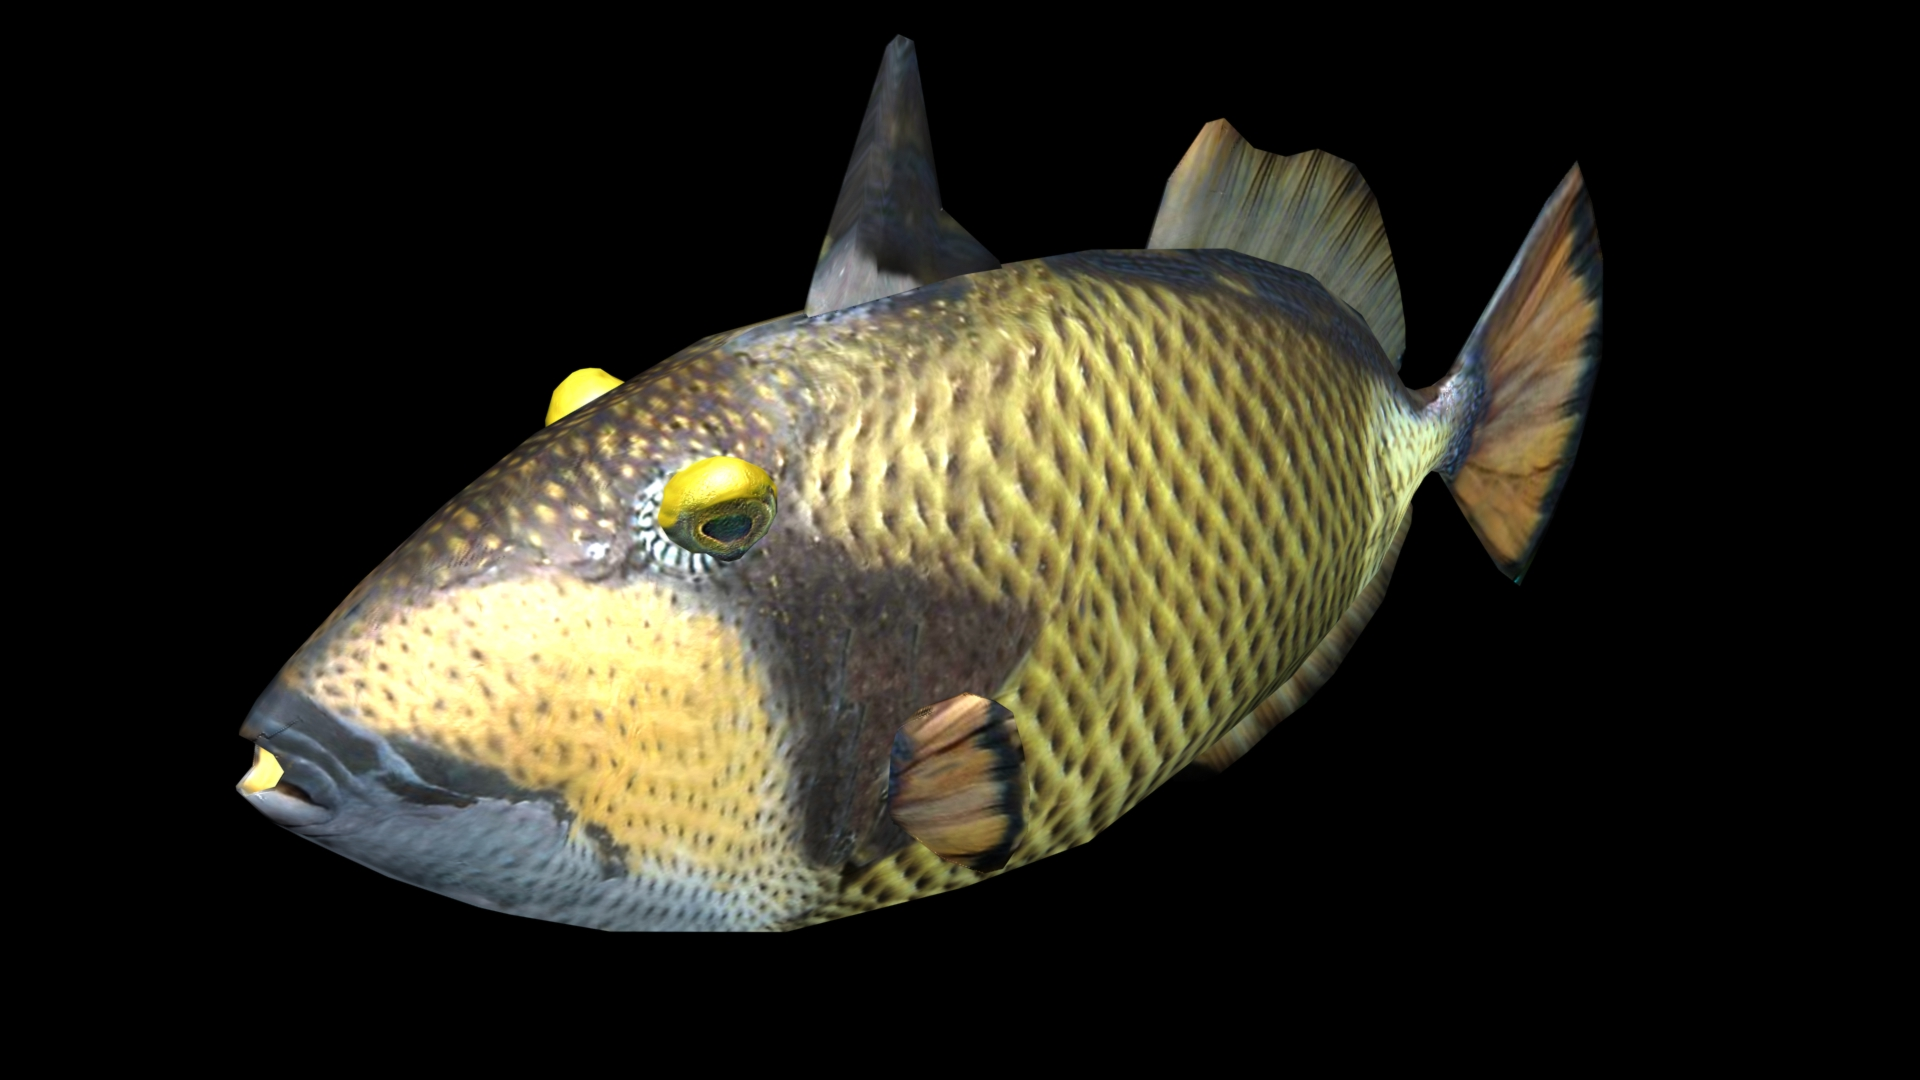 Titan triggerfish black background wallpaper